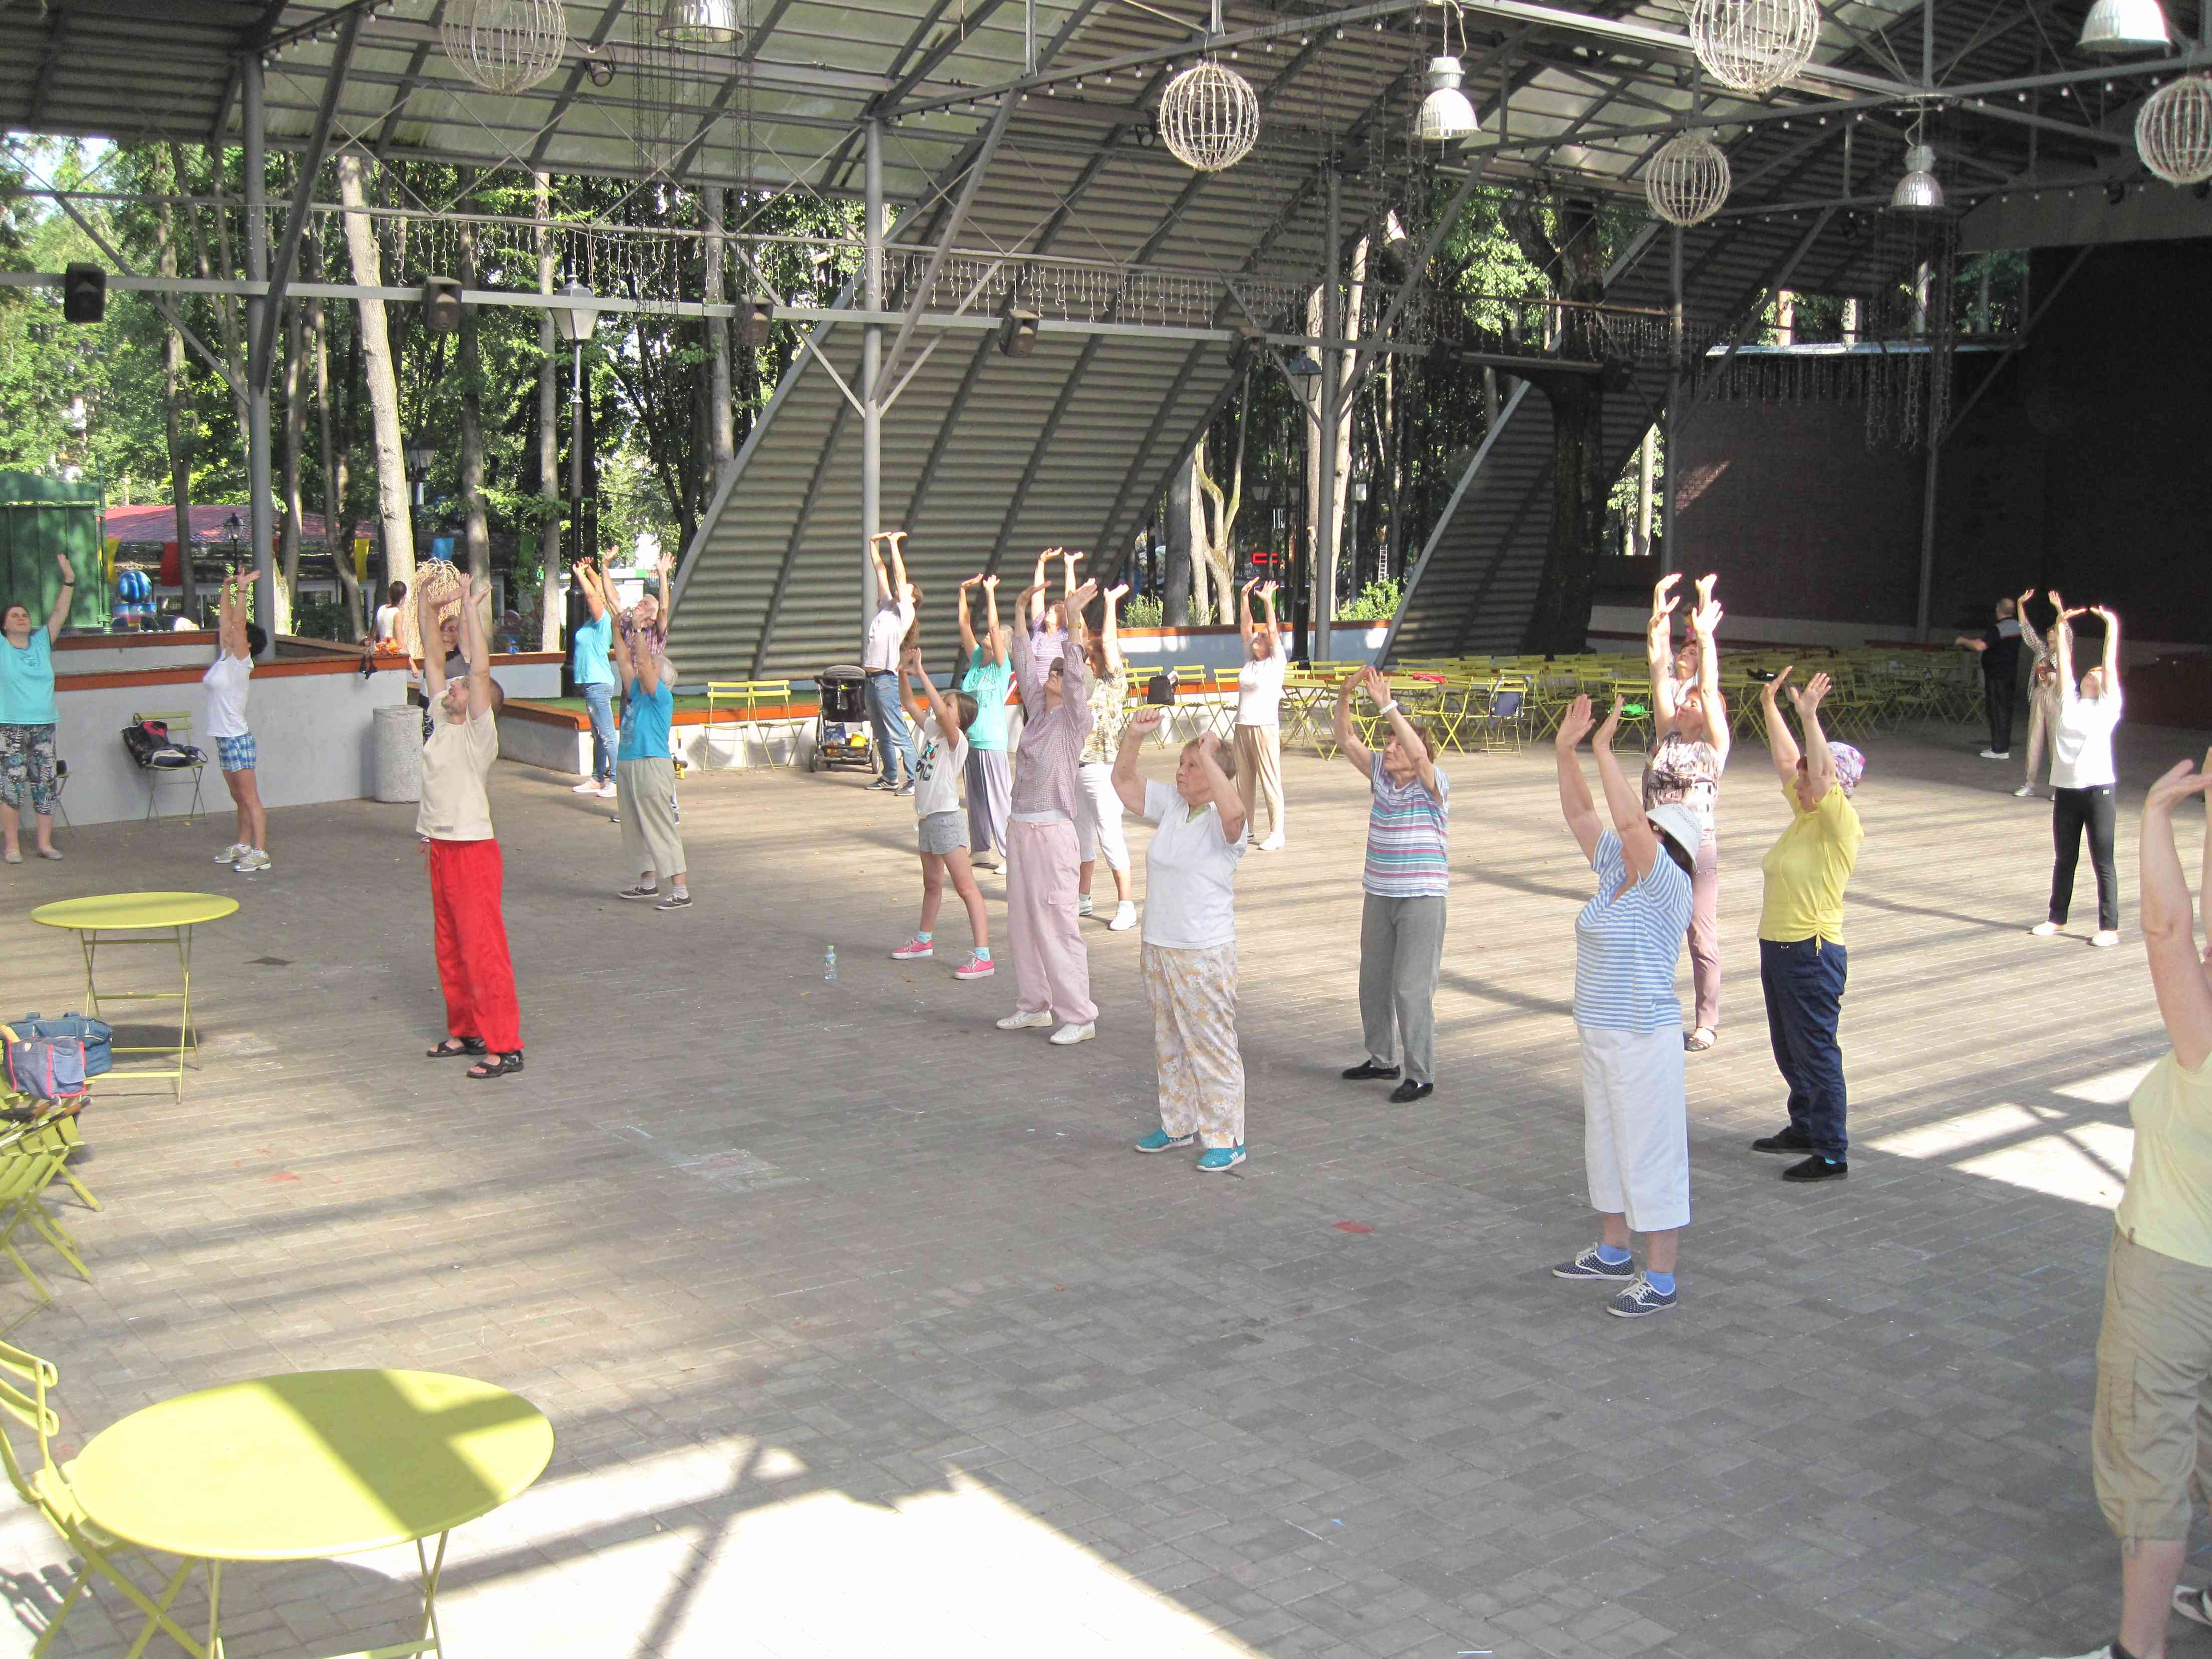 Babushkinsky Park of Culture and Rest in Moscow: photos, description, activities, leisure options, visitor reviews 17